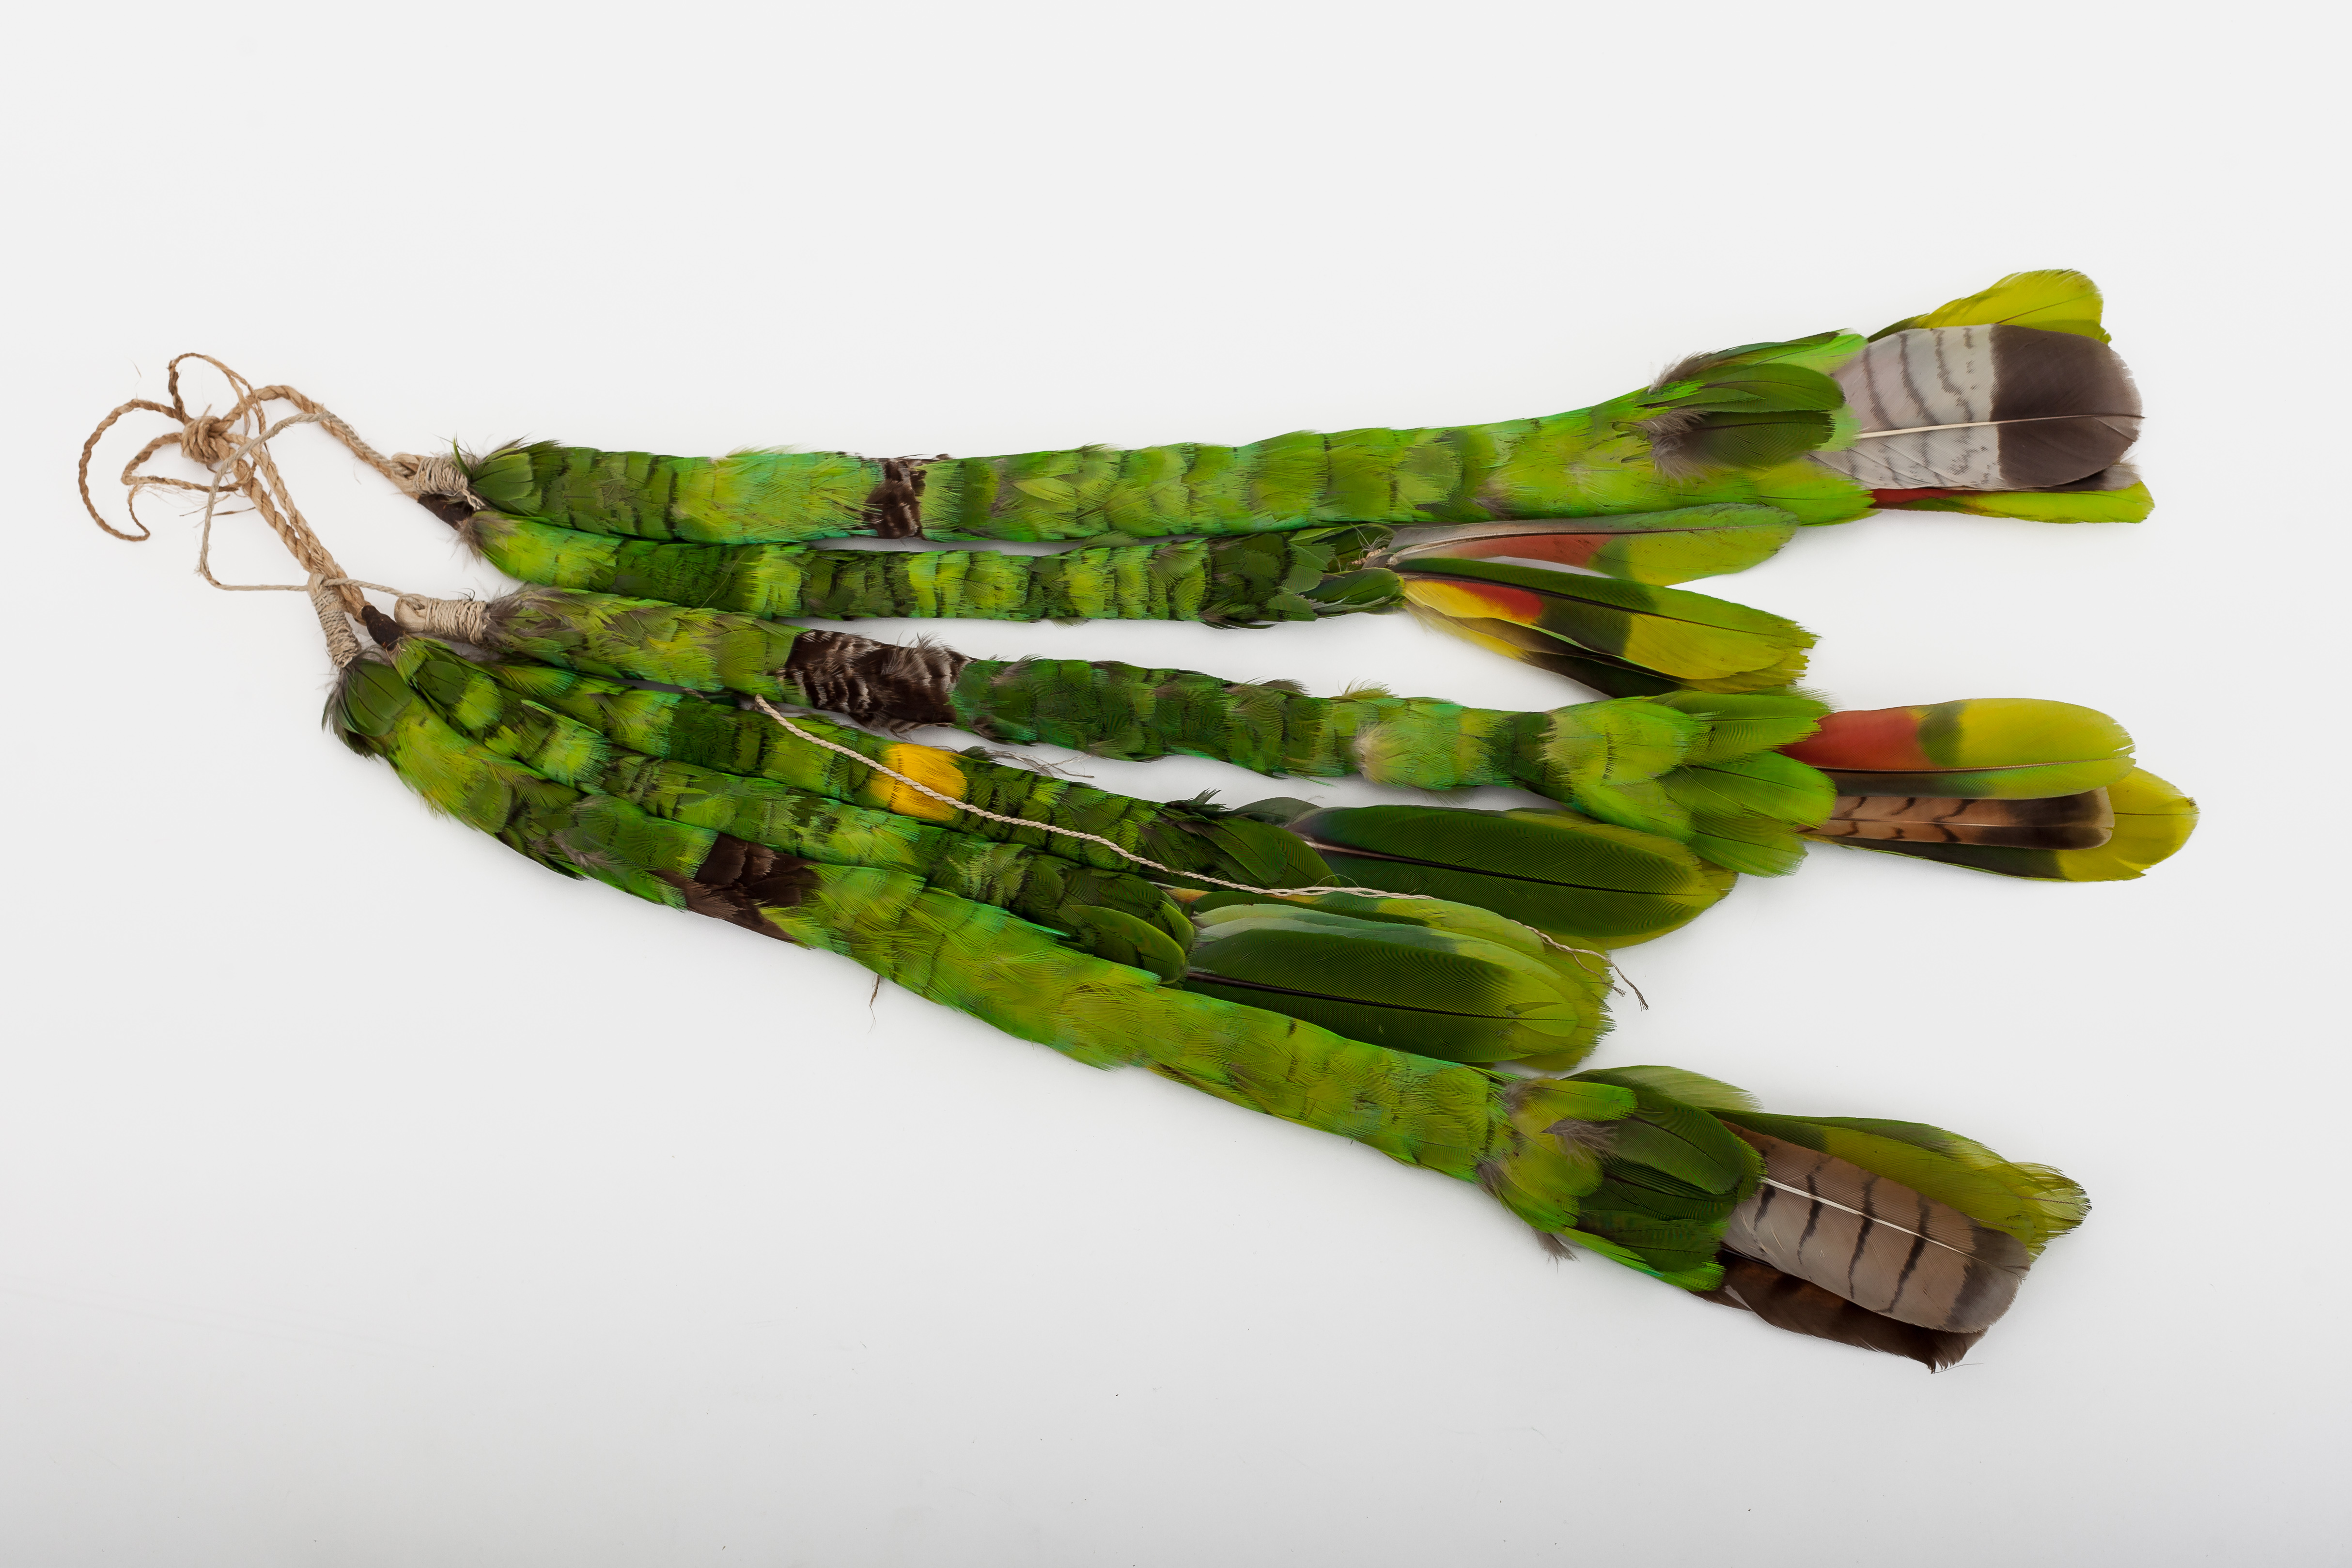 Parrot feathers, woven to look like a tail worn by men.